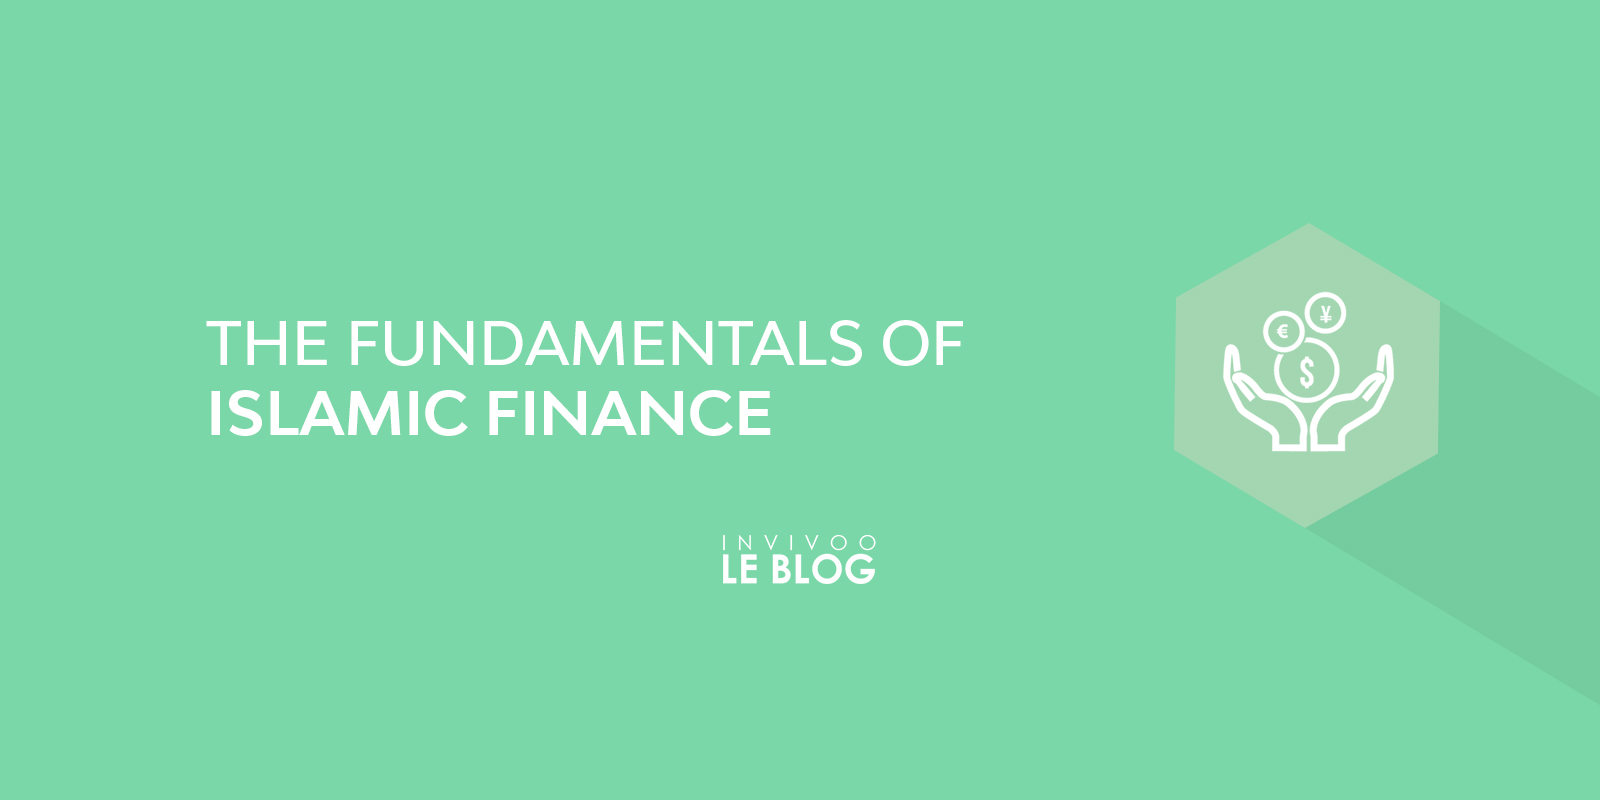 The Fundamentals of Islamic Finance